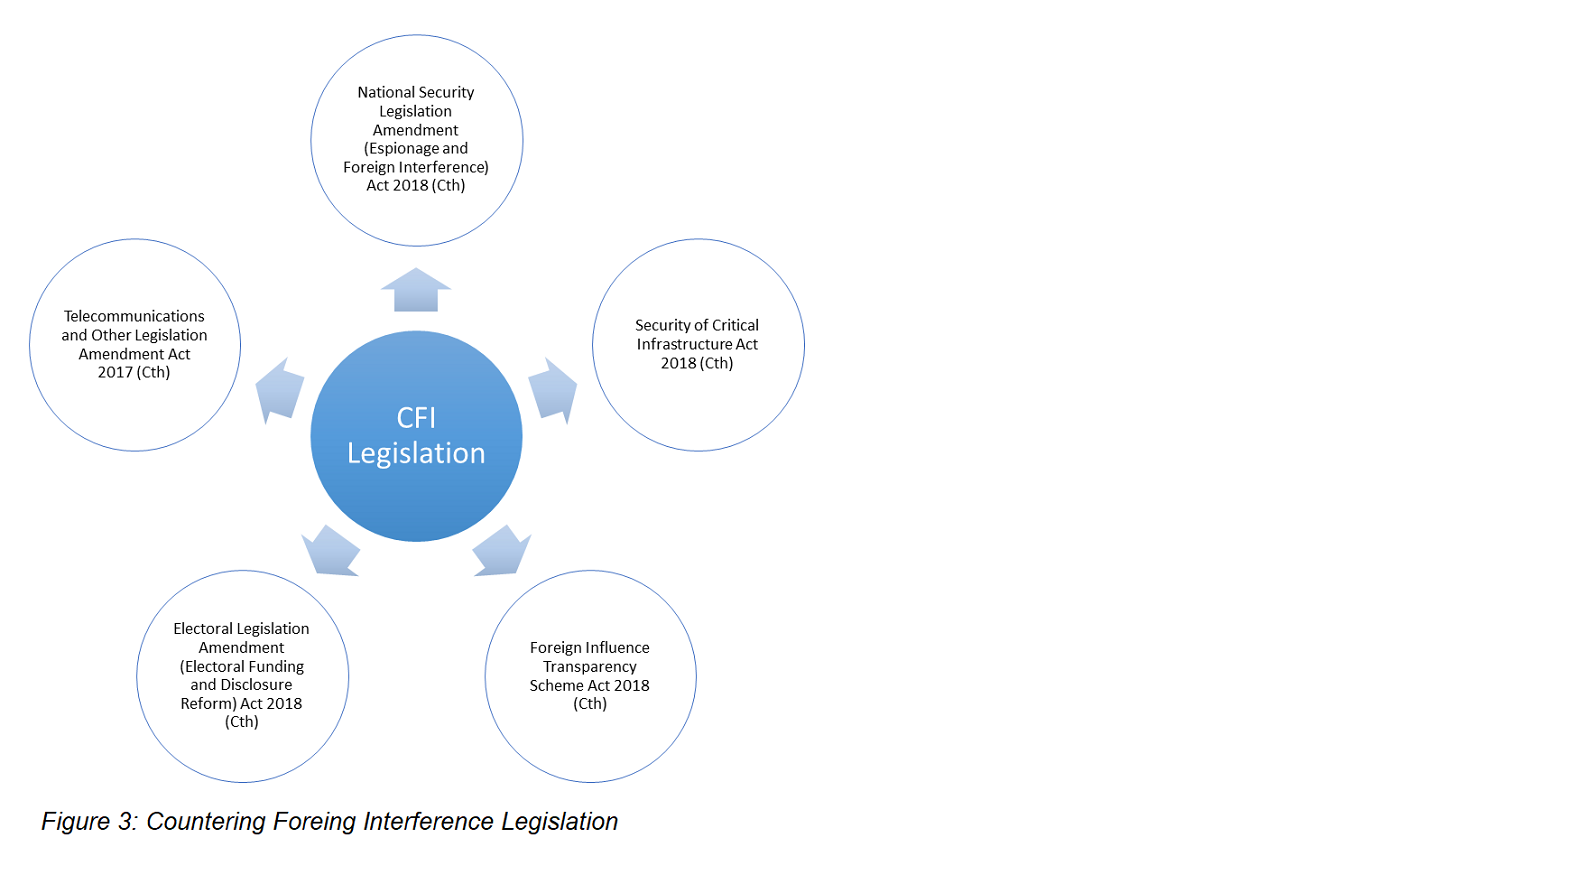 Figure 3: Countering Foreign Interference Legislation